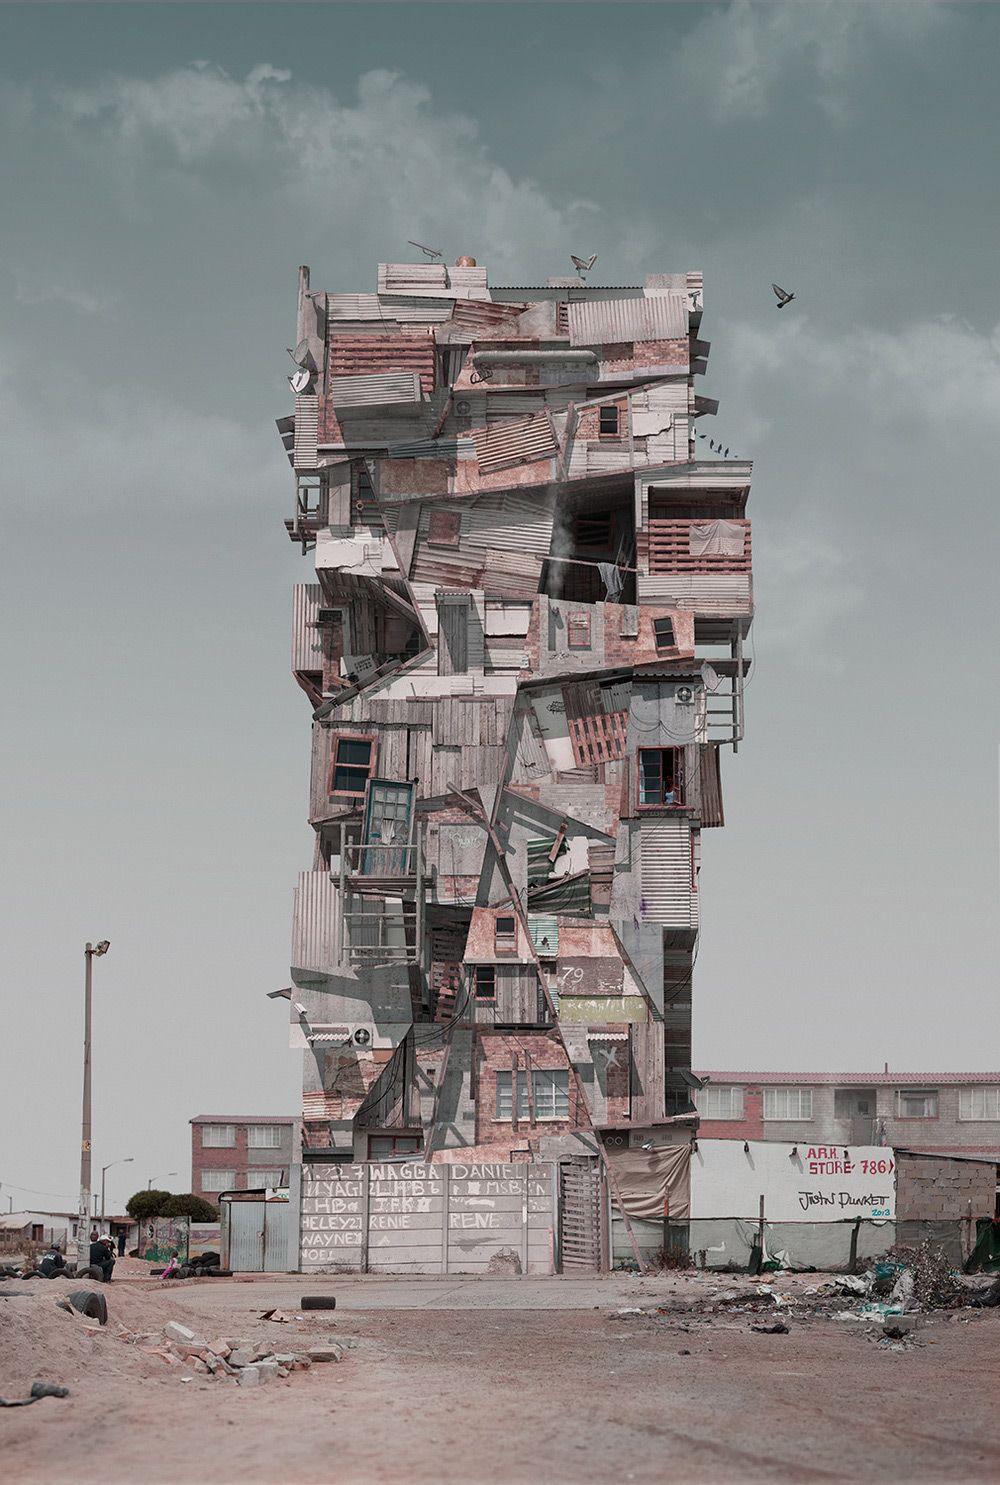 Created by South African designer Justin Plunkett, the so-called Con/struct series is meant to illustrate the overbearing influence of commercialization both on the way we live and on our urban landscape. Plunkett hopes his computer-animated work—which lo